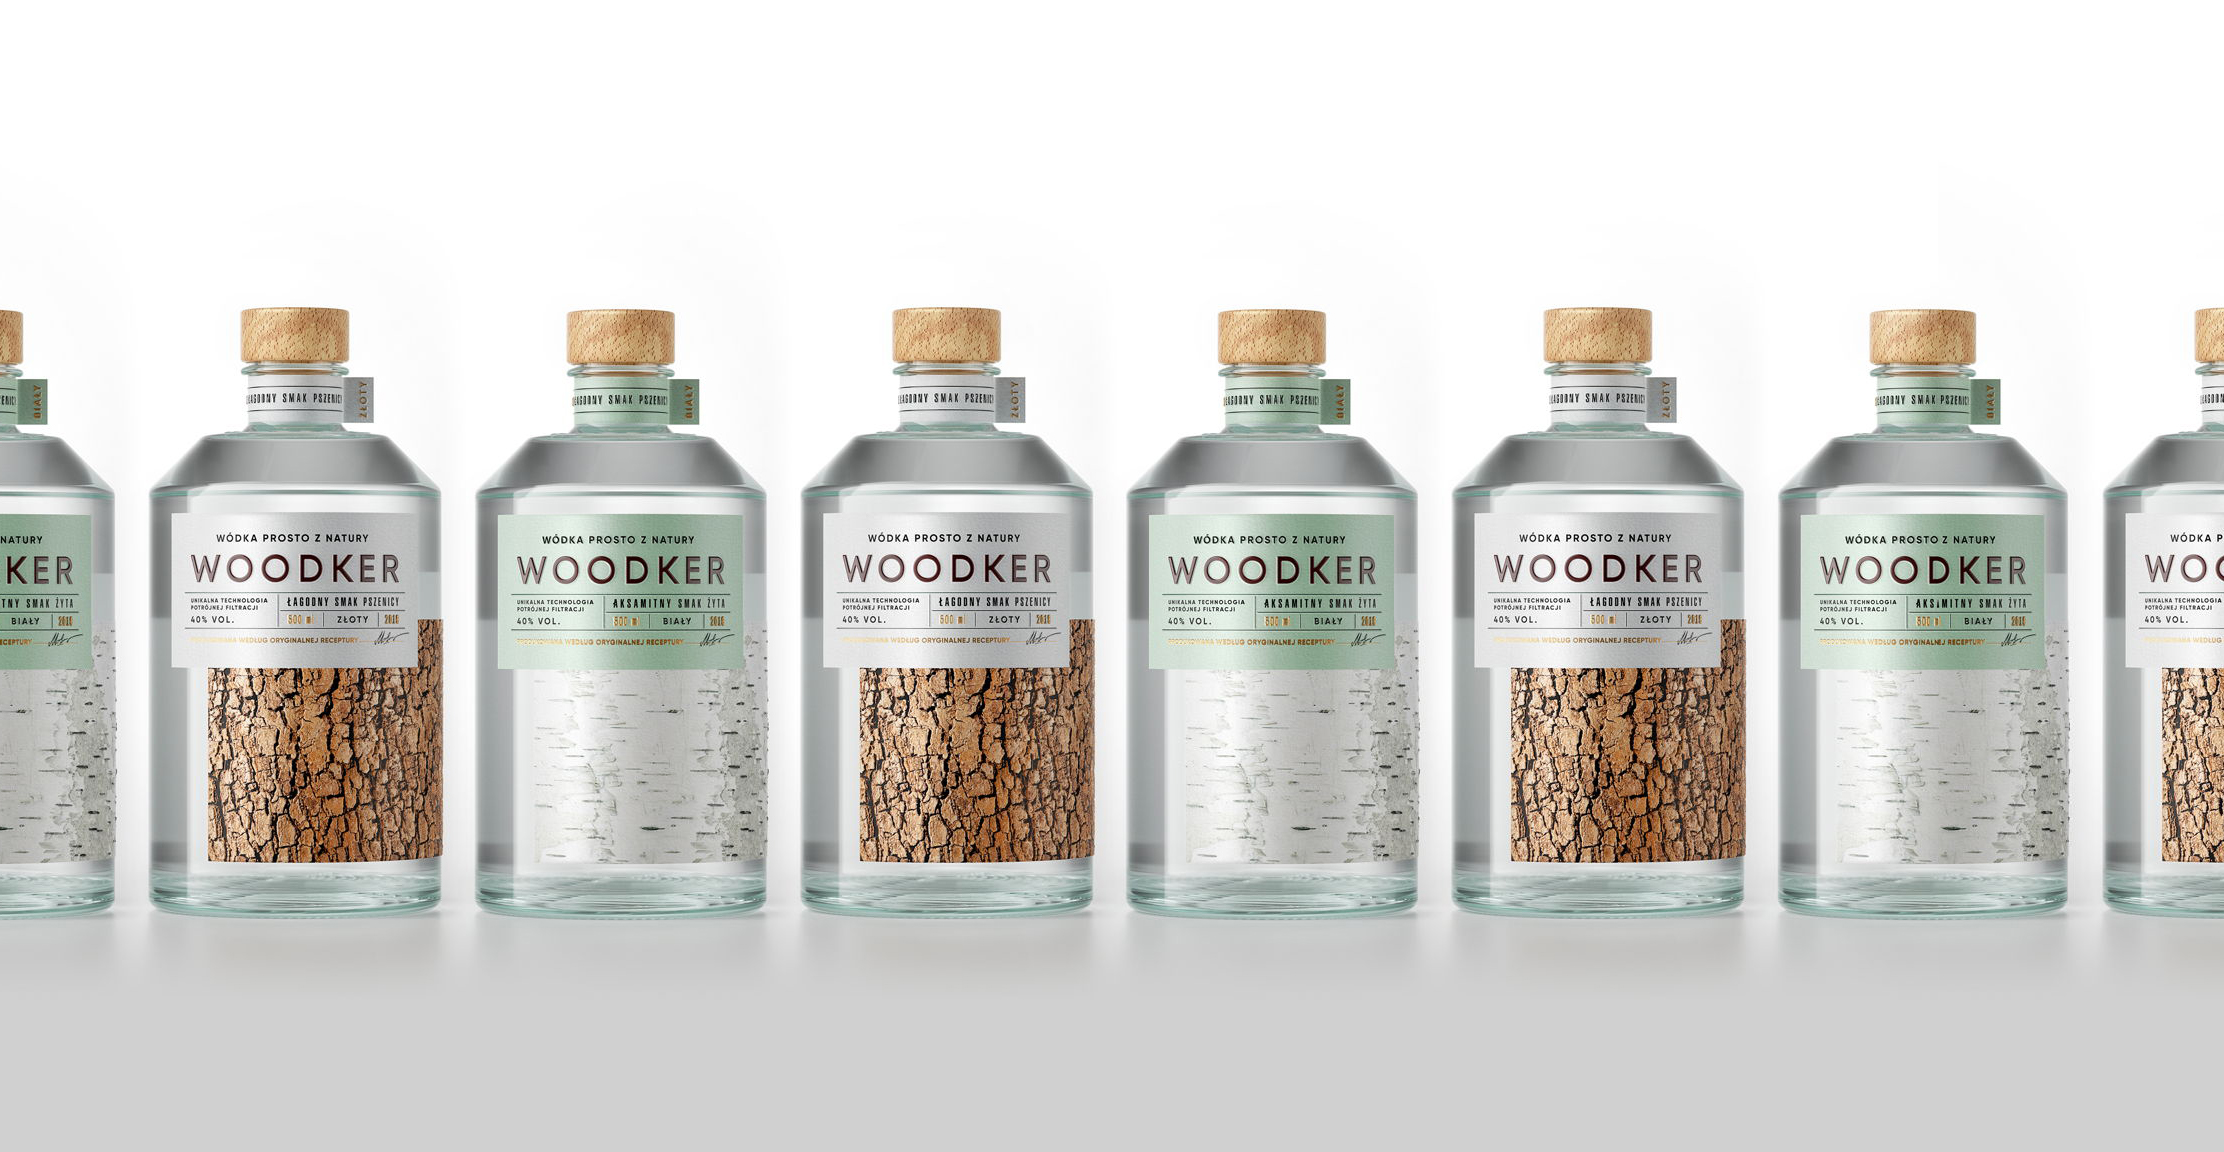 Woodker vodka packaging with bark effect and raised print